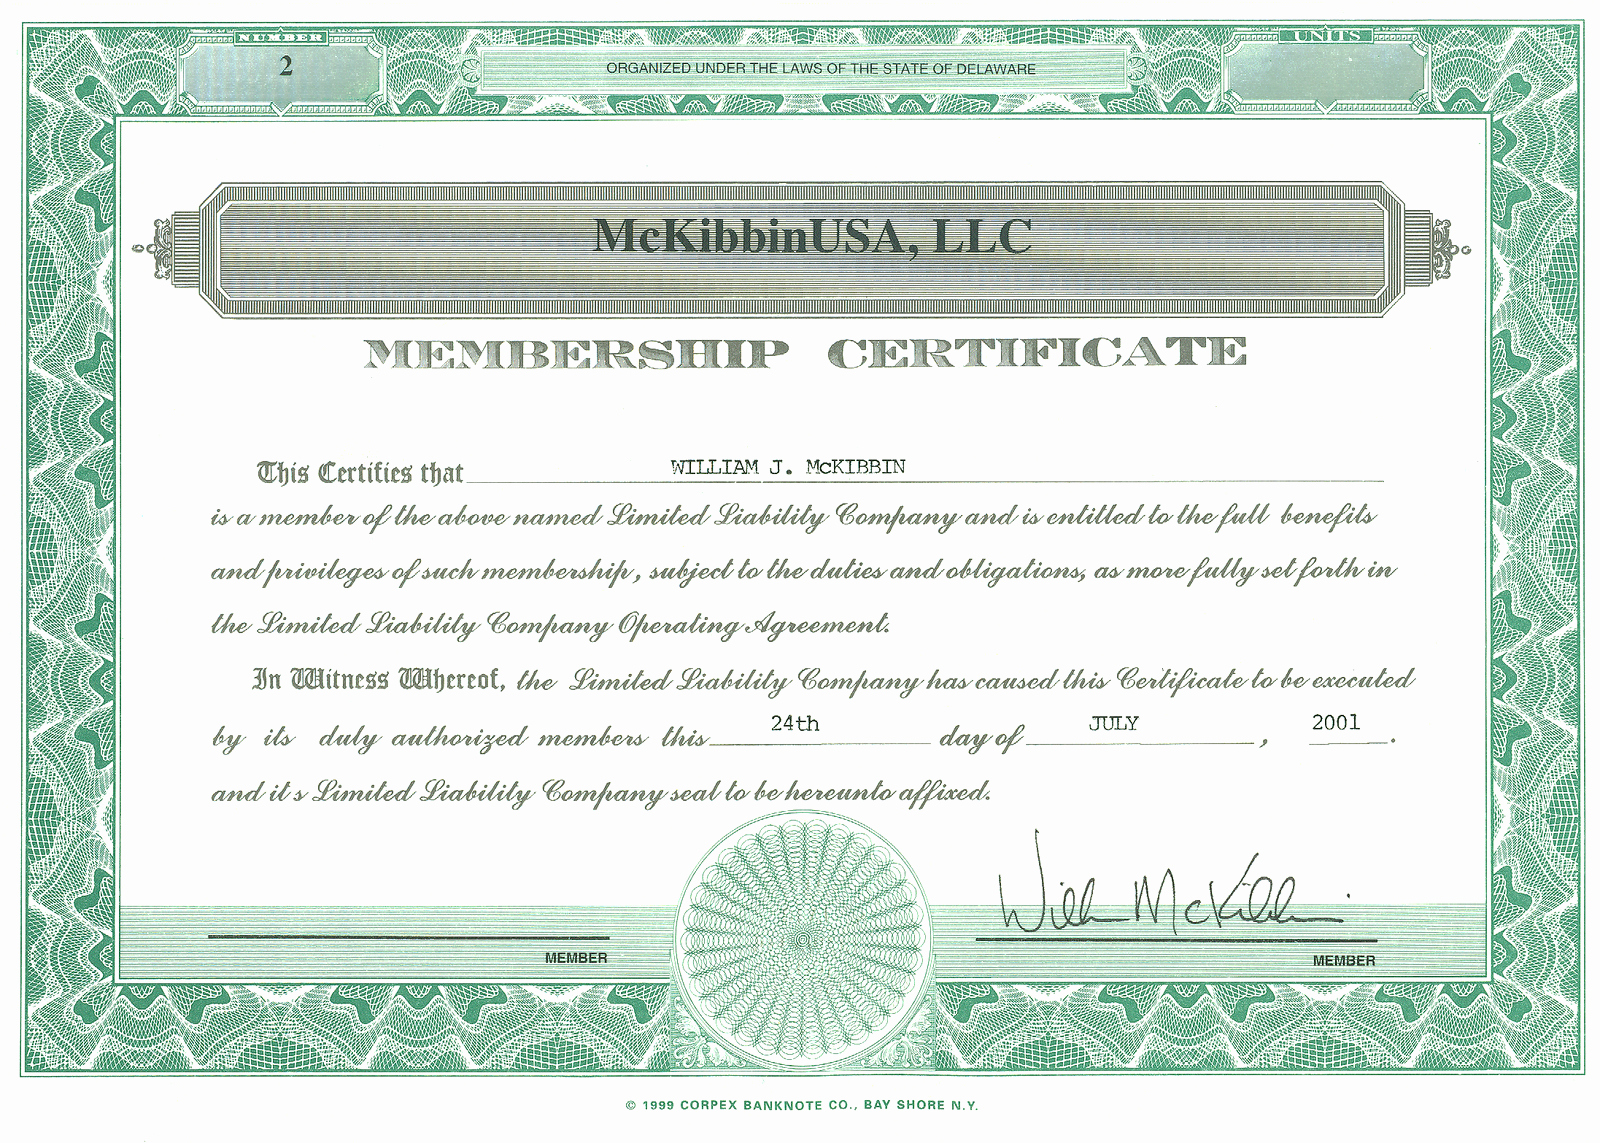 Llc Membership Certificate Template Best Of to Learn More About How I Started My Business Back In 2001